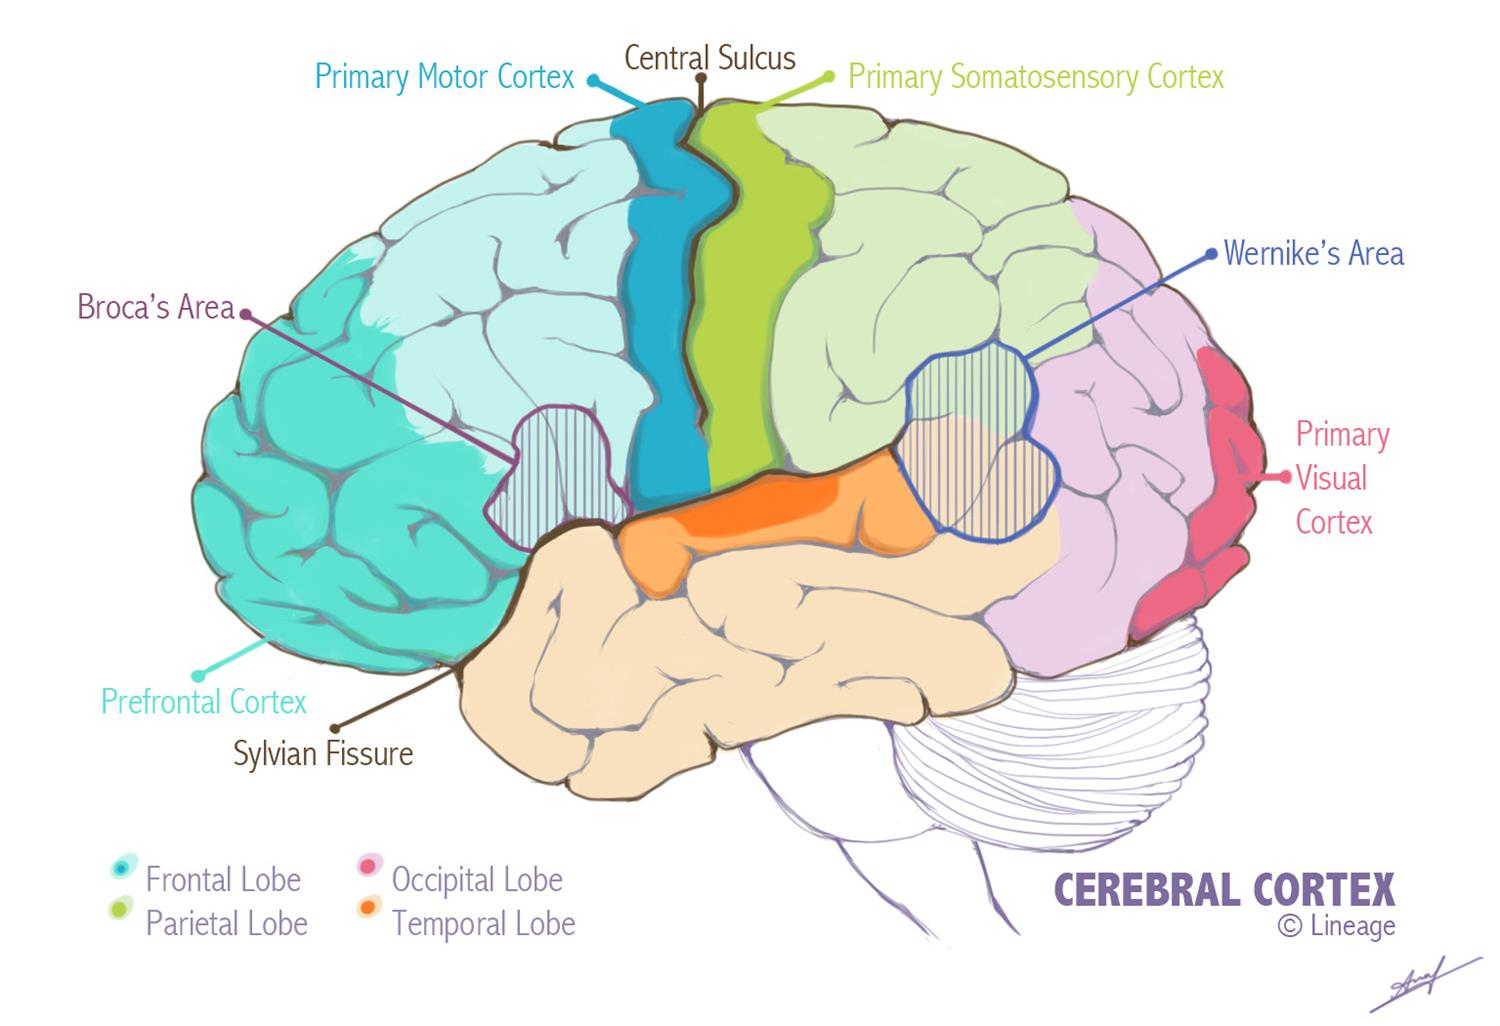 Map of the cerebral cortex and important landmarks.